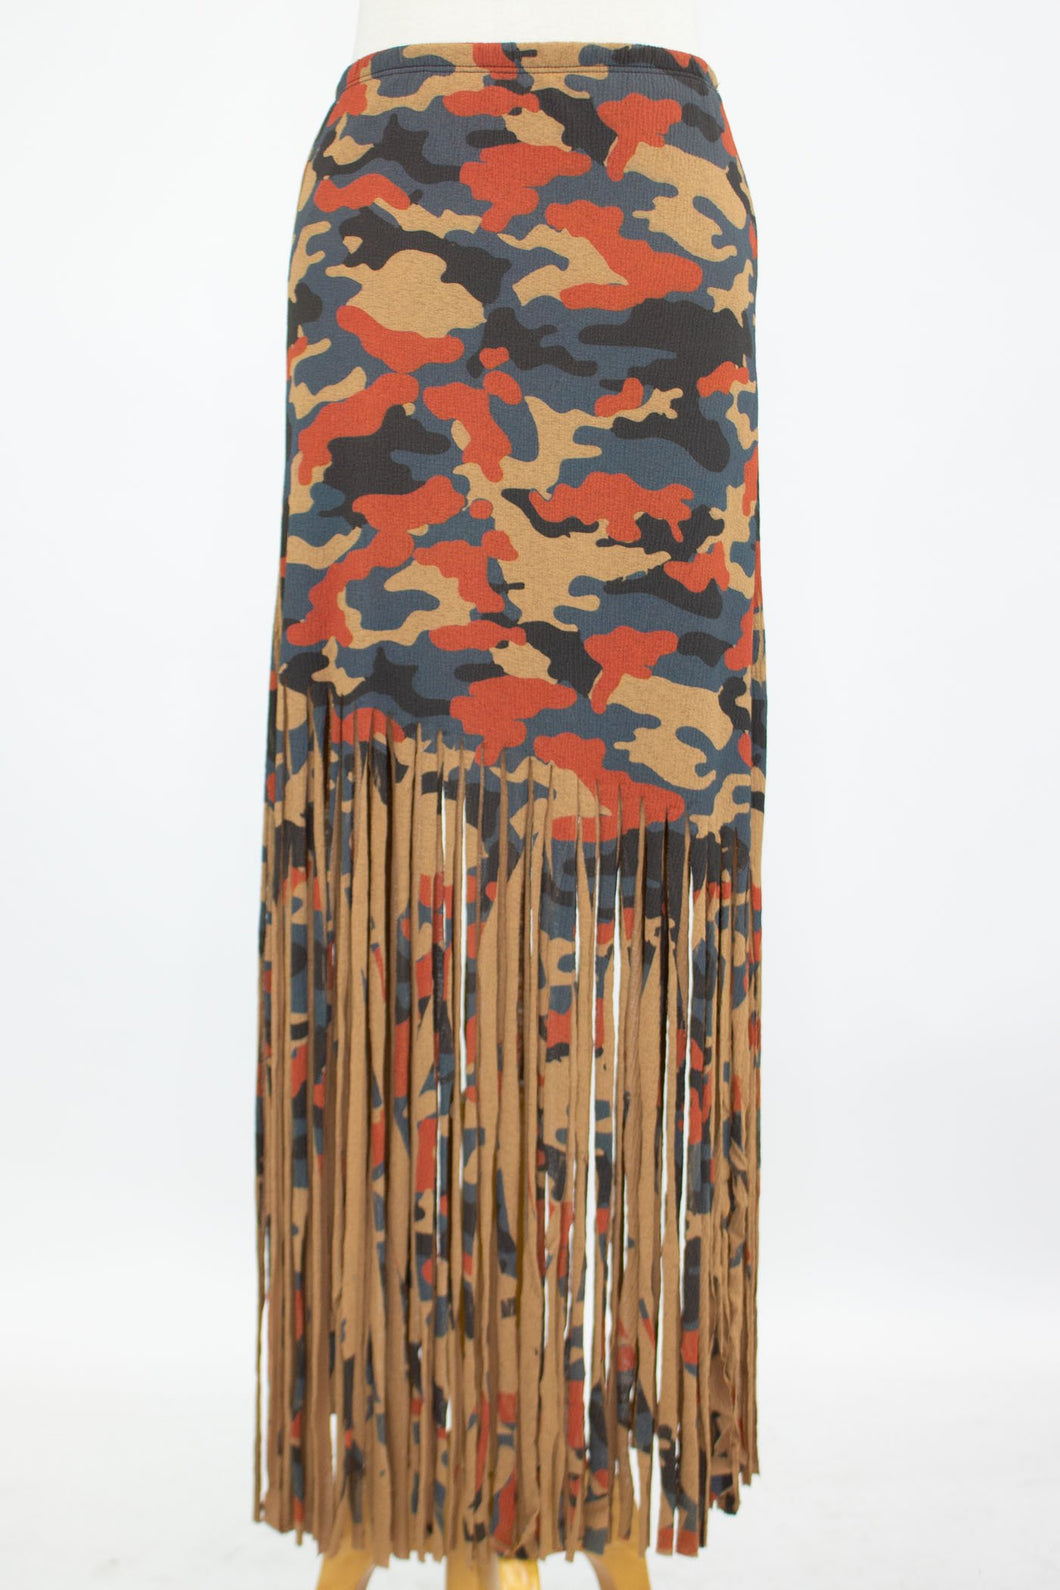 Camouflage Print Skirt with Fringe - Mocha